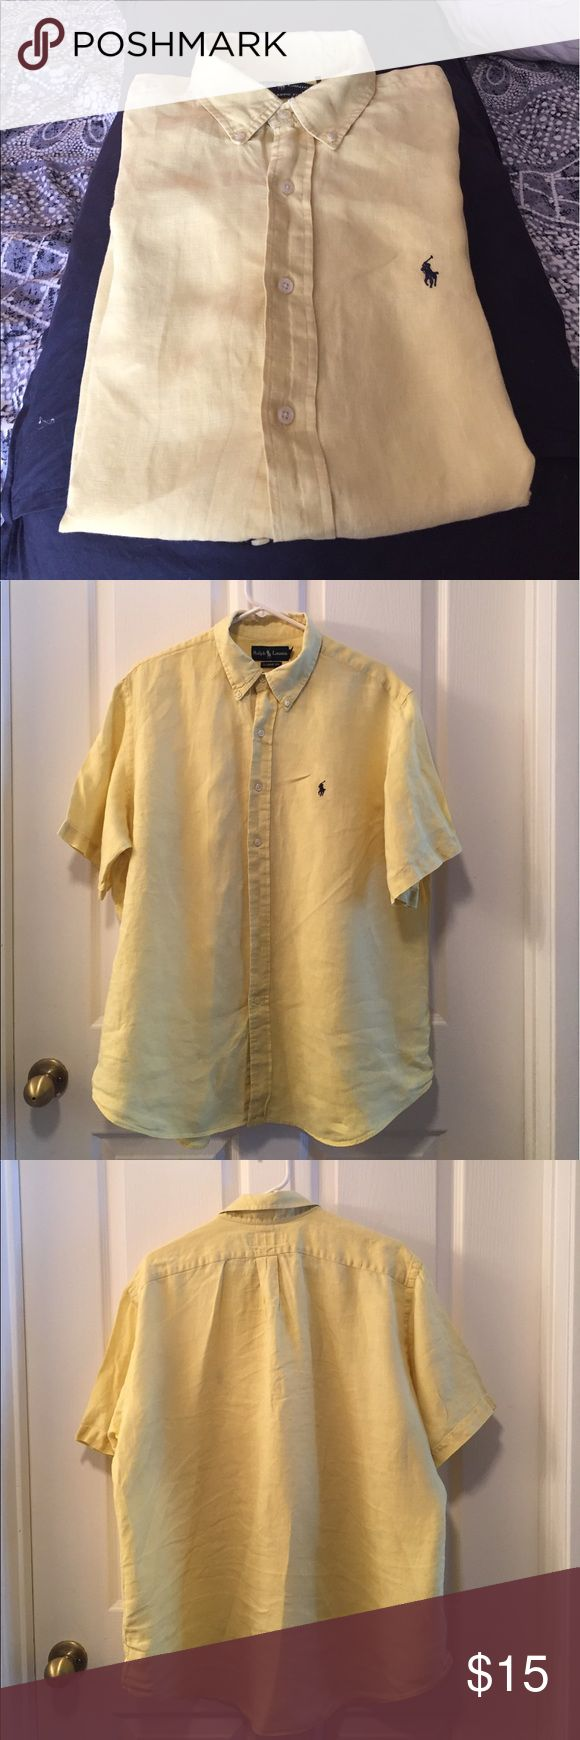 Men's short sleeve button down RL shirts/ XL men's short sleeve Polo Jeans Ralph Lauren button down shirt in Large.  100% Cotton.  This shirt is still I. Good condition except the collar is tattered but still able to wear it. This is why I am selling it less than my other Ralph Lauren. This is a Classic Fit Polo by Ralph Lauren Shirts Casual Button Down Shirts